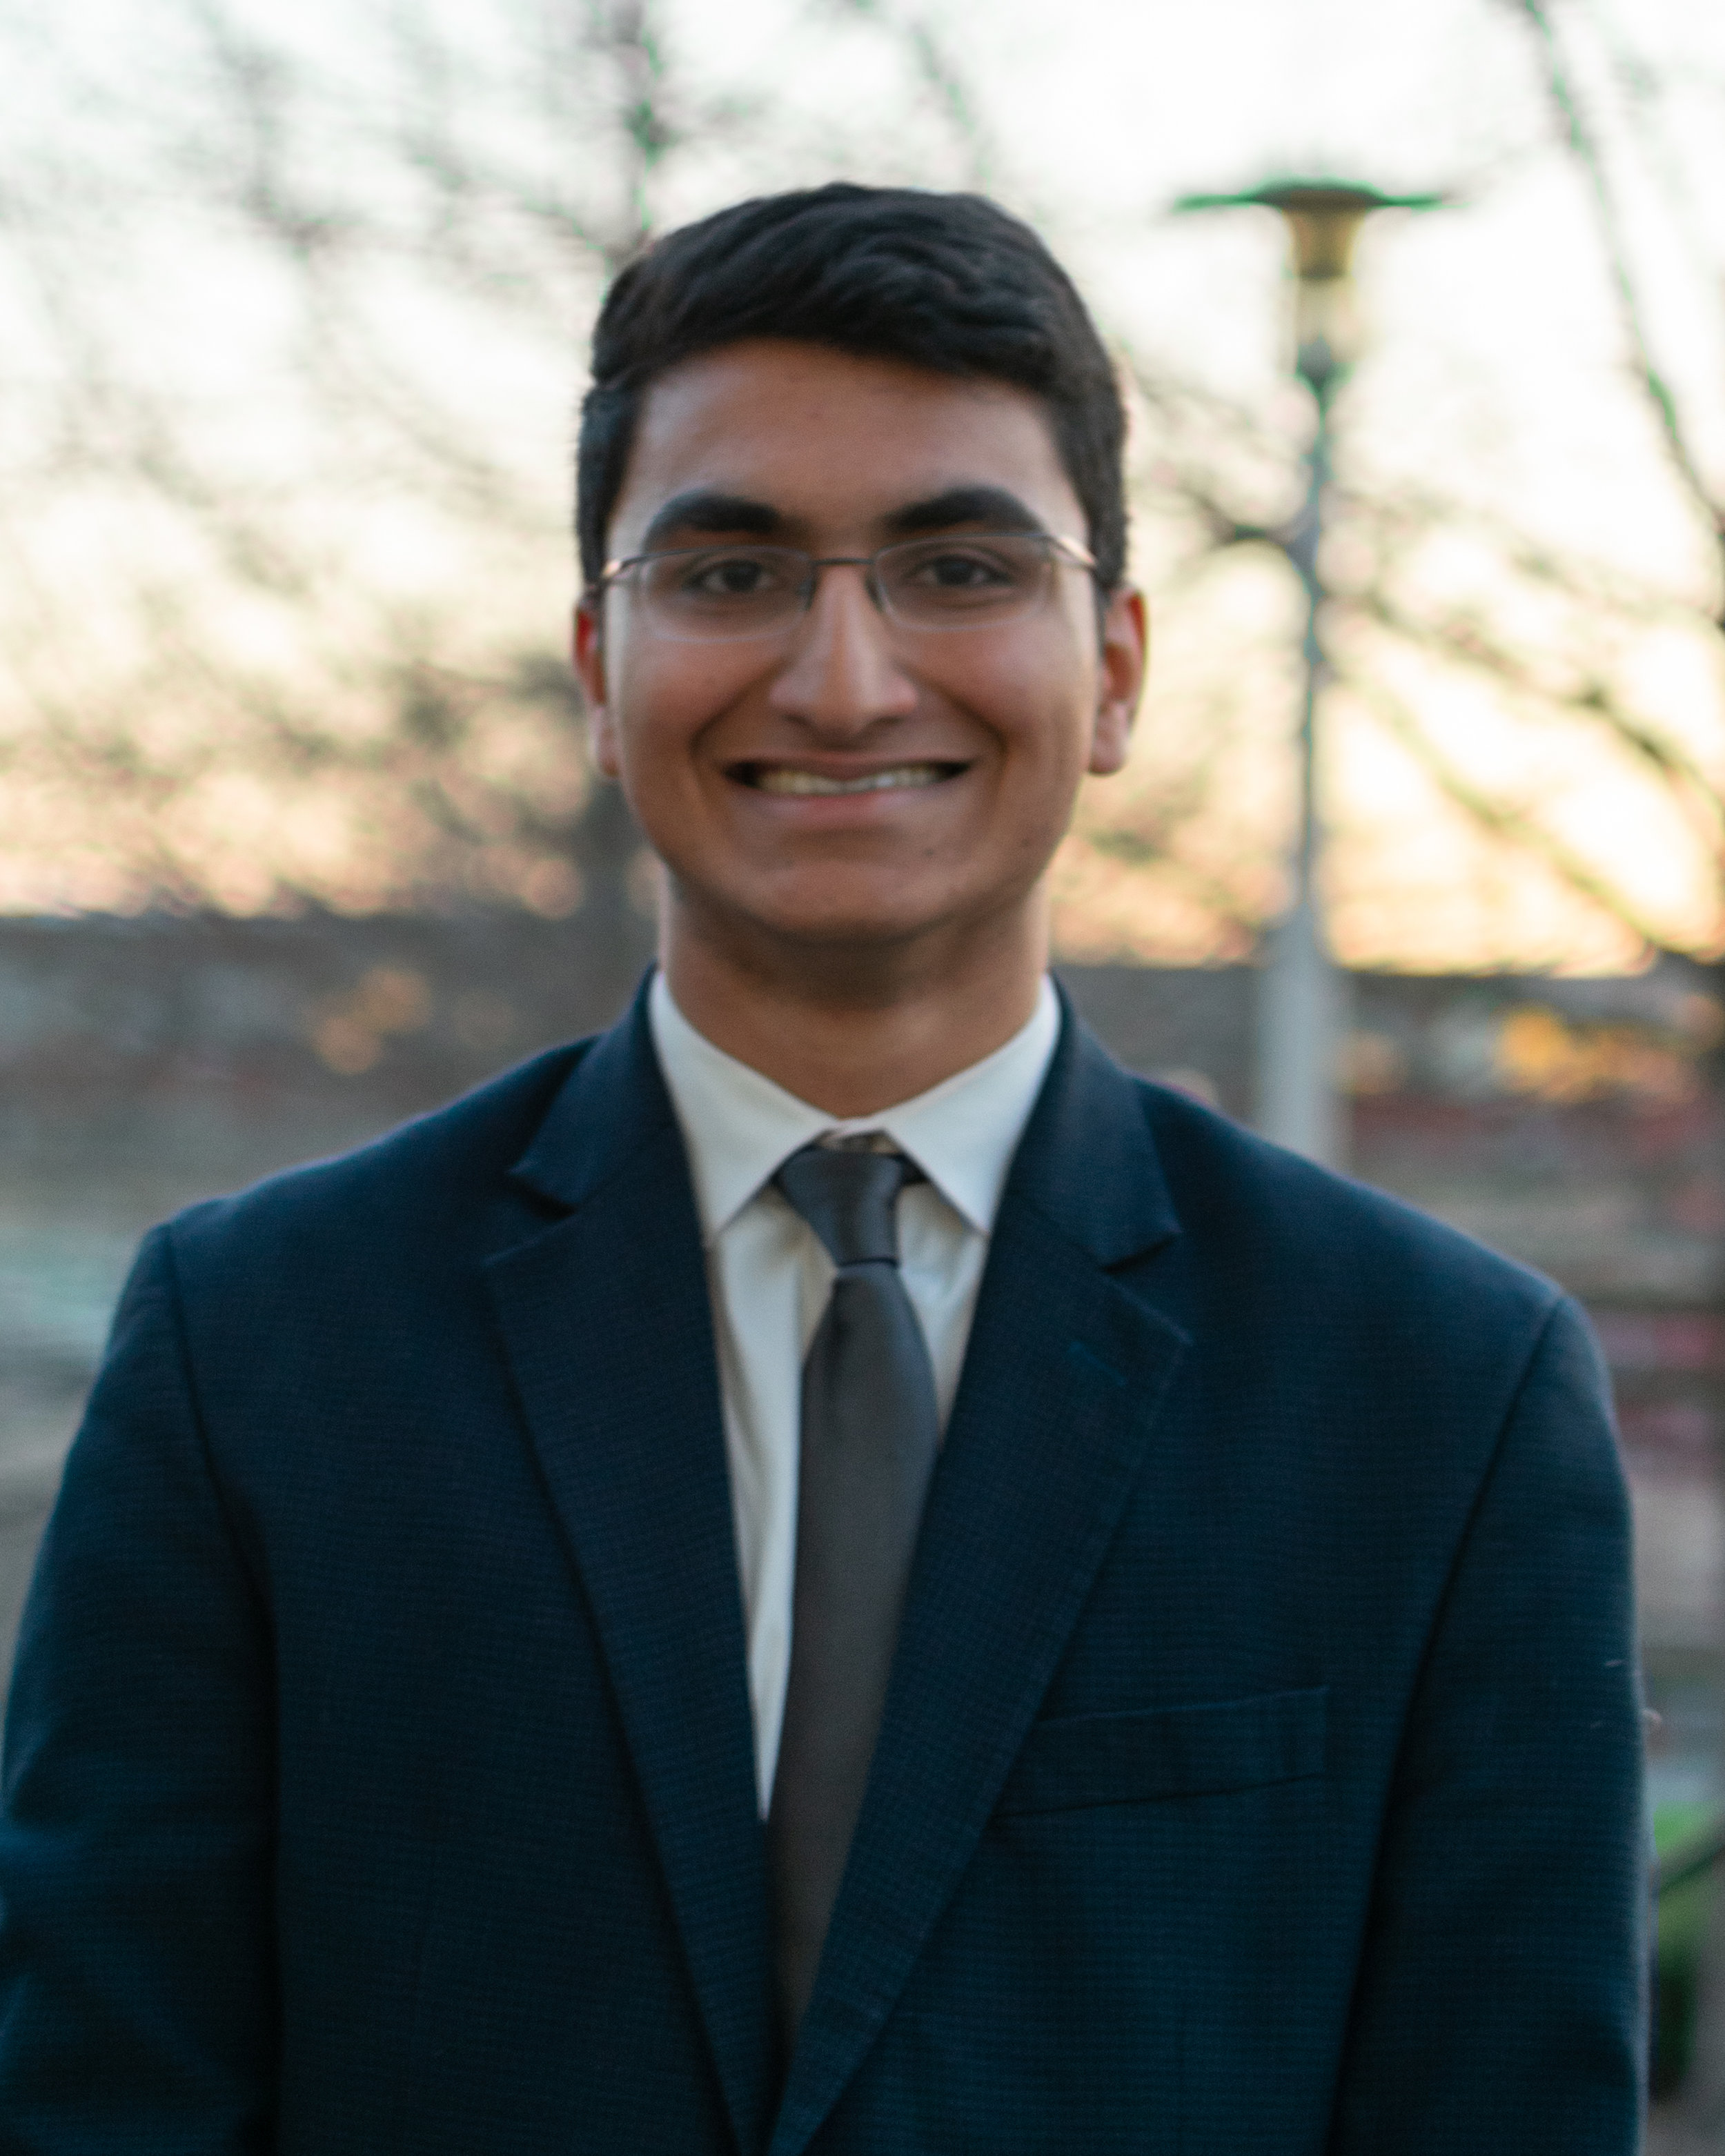 Aditya is a sophomore double majoring in Economics and Computer Science. On campus, he is also a consultant for the computer science department. This past summer, he worked as a software engineering intern for Tamr, a data unification company.